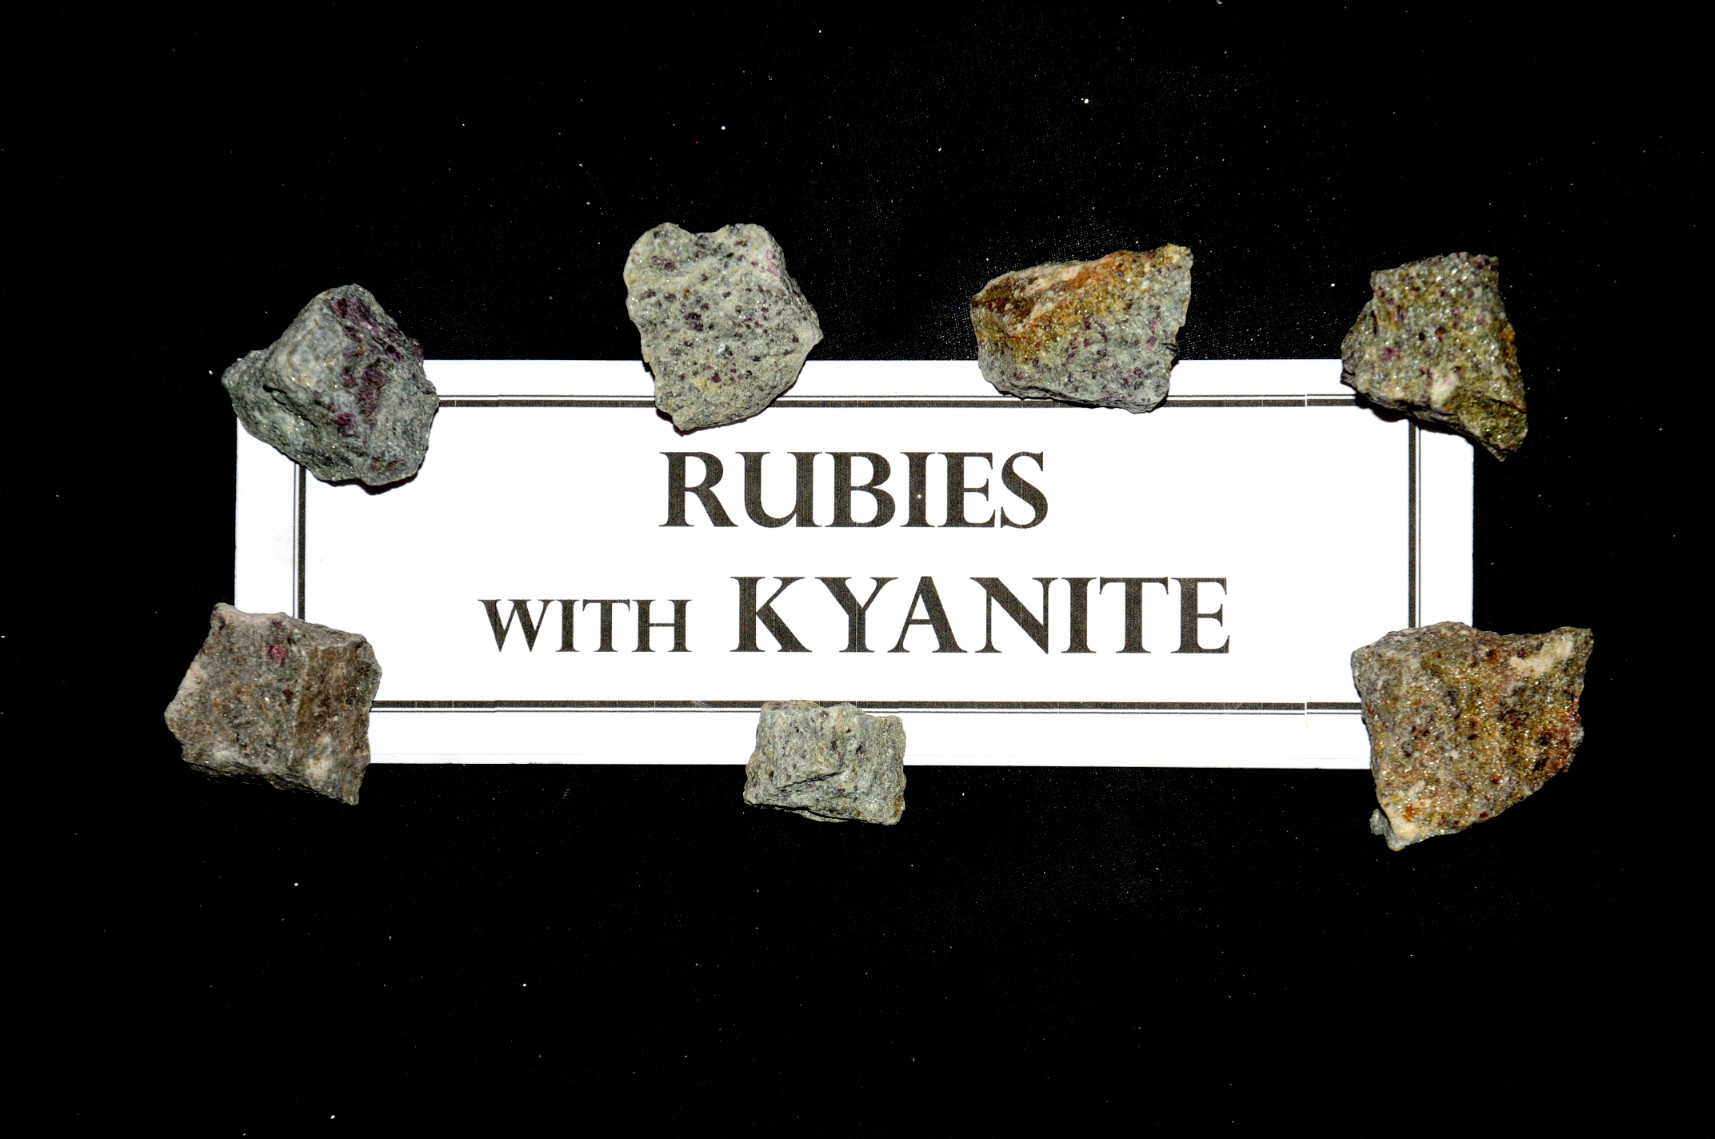 Rubies with Kyanite